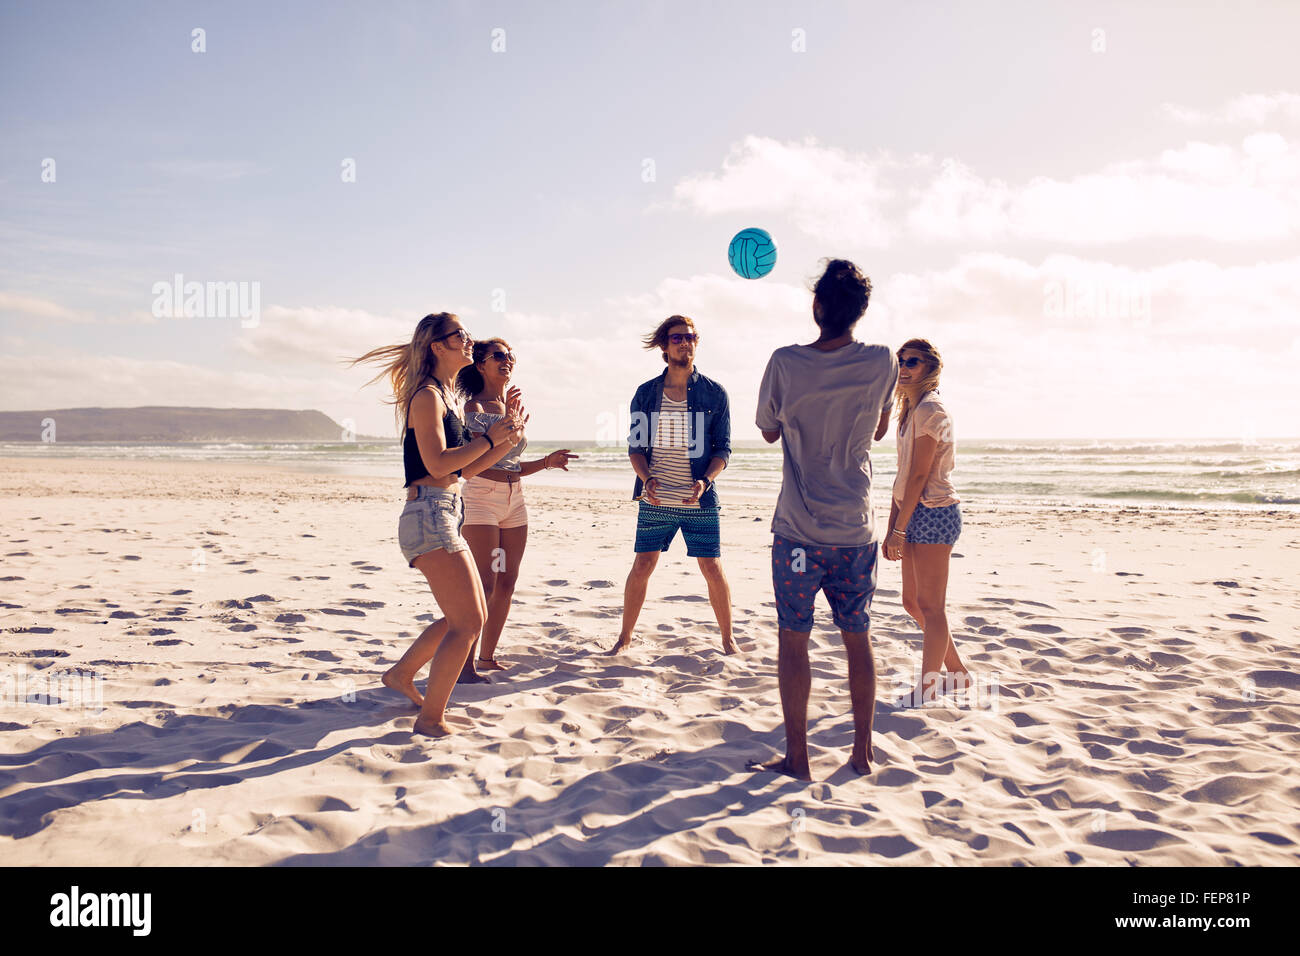 Group of young people playing with ball at the beach. Young friends enjoying summer holidays on a sandy beach. - Stock Image